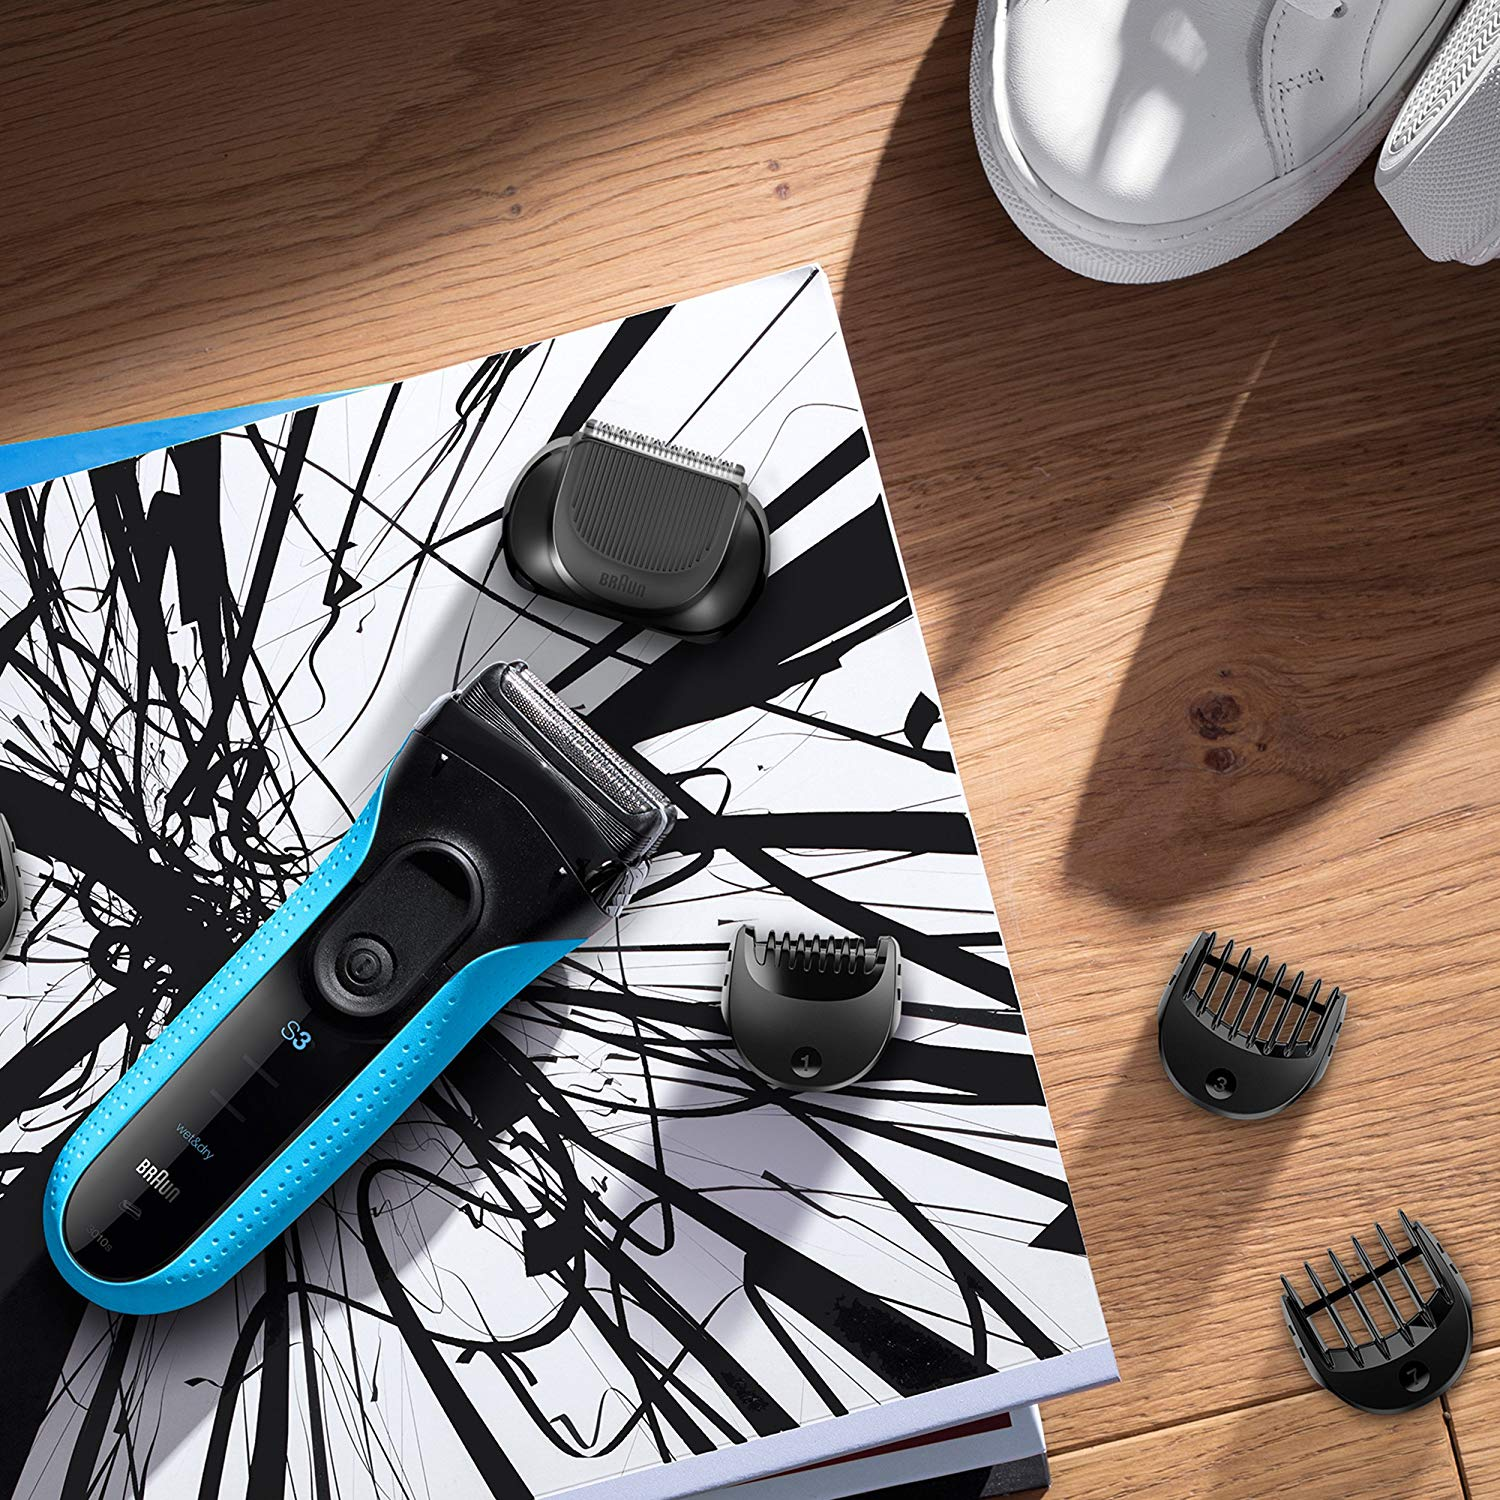 Braun Series 3 Shave&Style 3010BT 3-in-1 Electric Wet & Dry Shaver with Precision Trimmer & 5 Comb Attachments